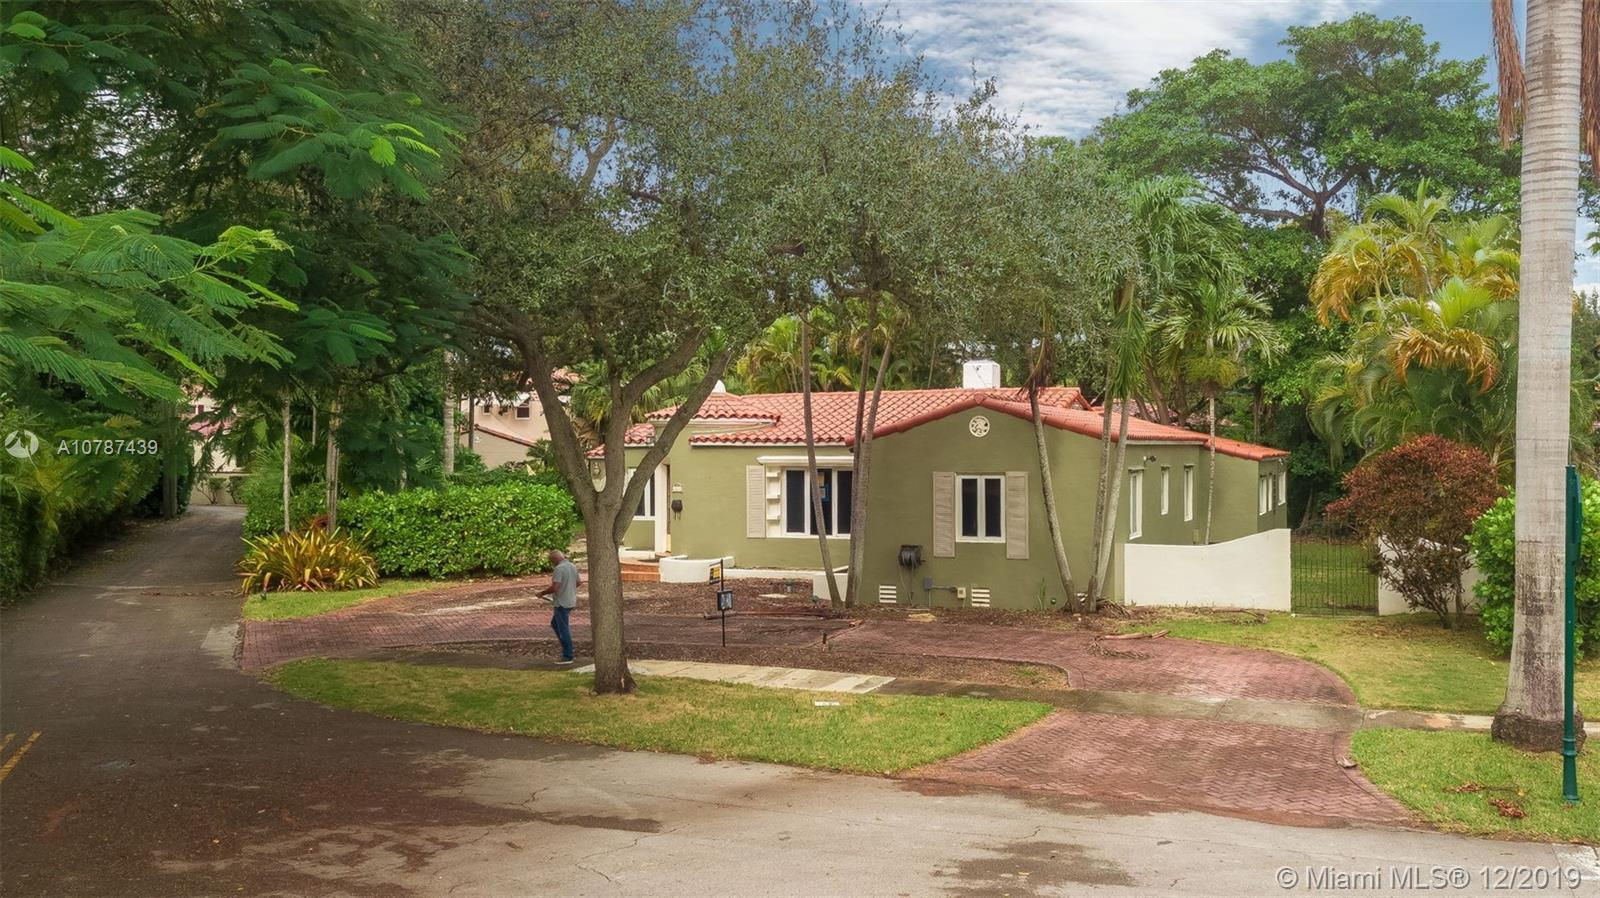 EAST OF US-1 ON A VERY QUIET STREET IN MIAMI SHORES.  THIS HOME HAS BEEN GUTTED AND IS READY FOR YOU